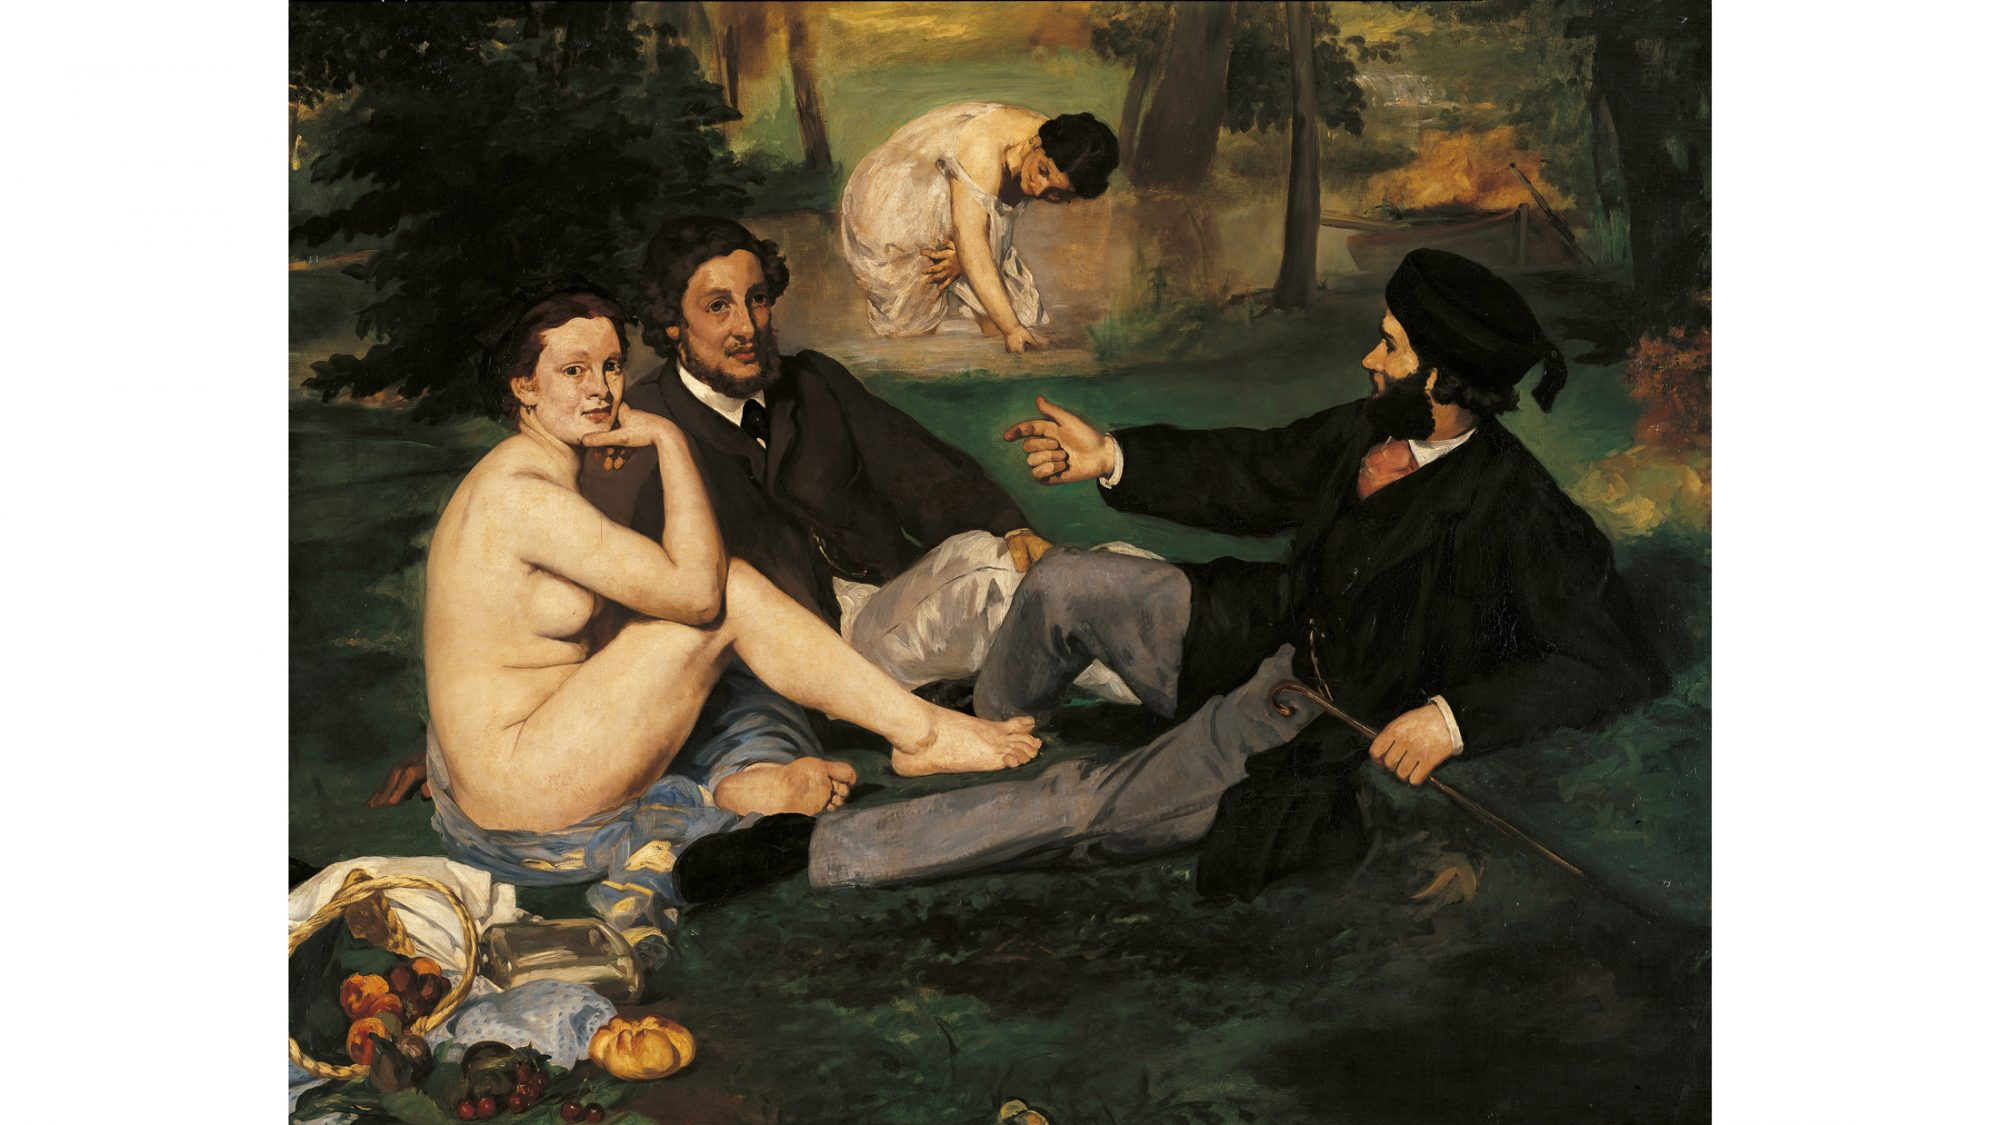 History of Dining in the Nude